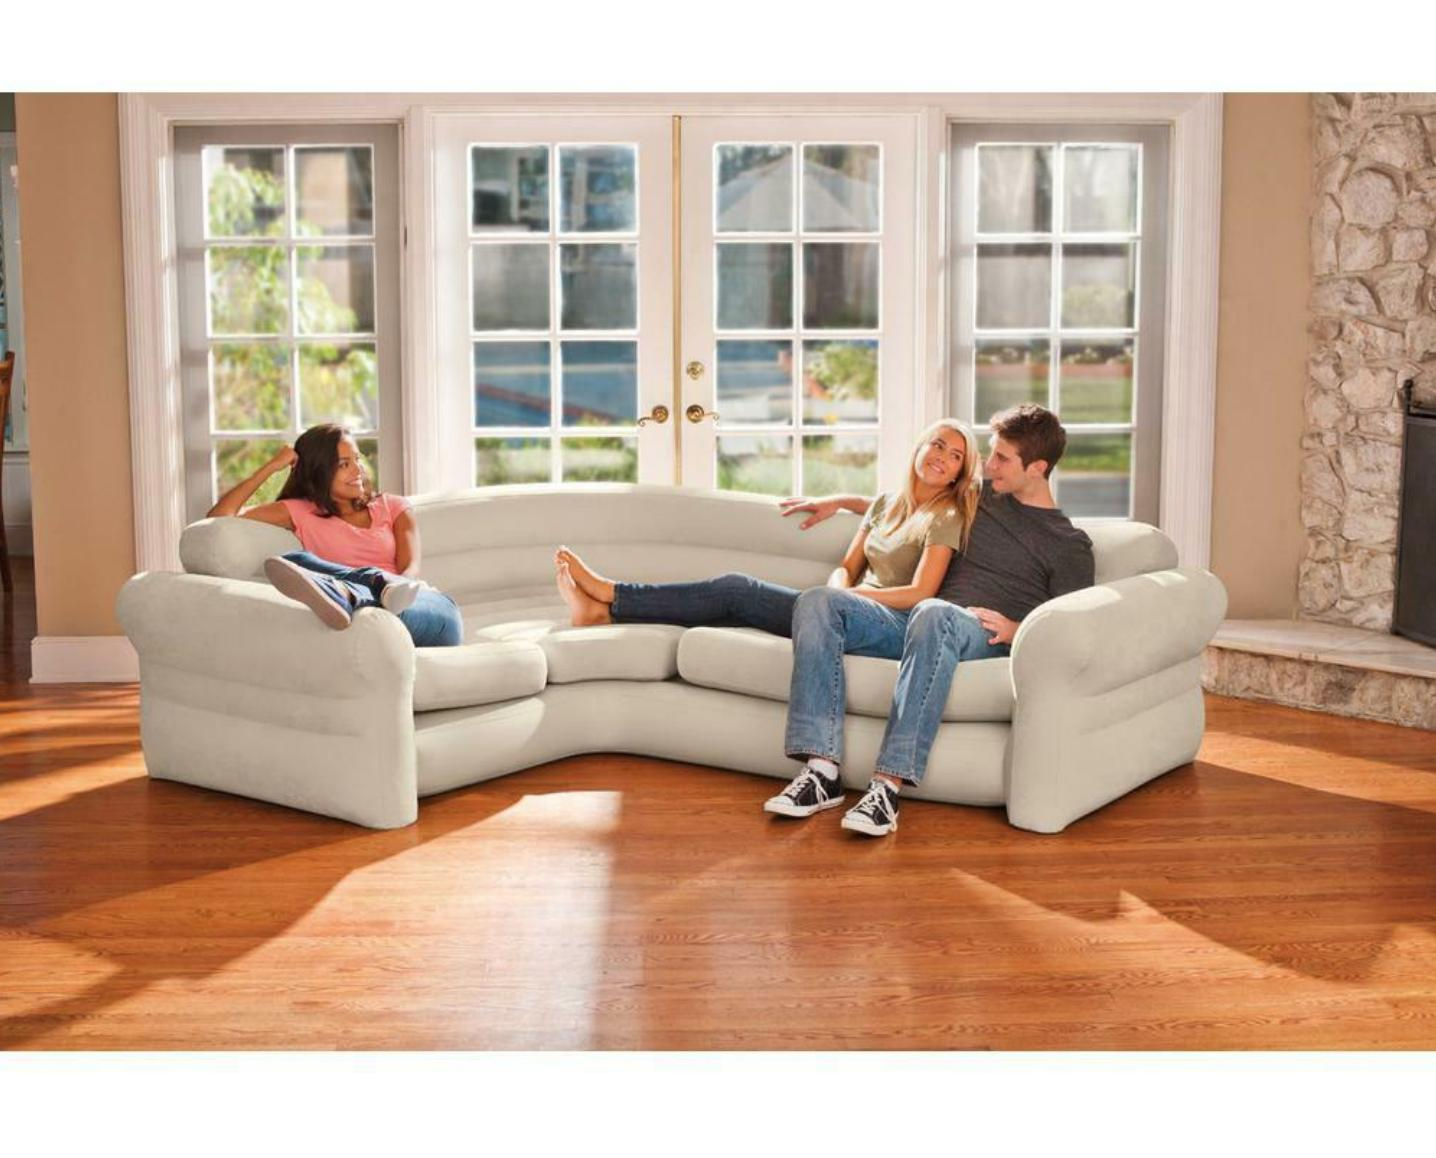 Inflatable Futon Couch Sofa Sleeper Room